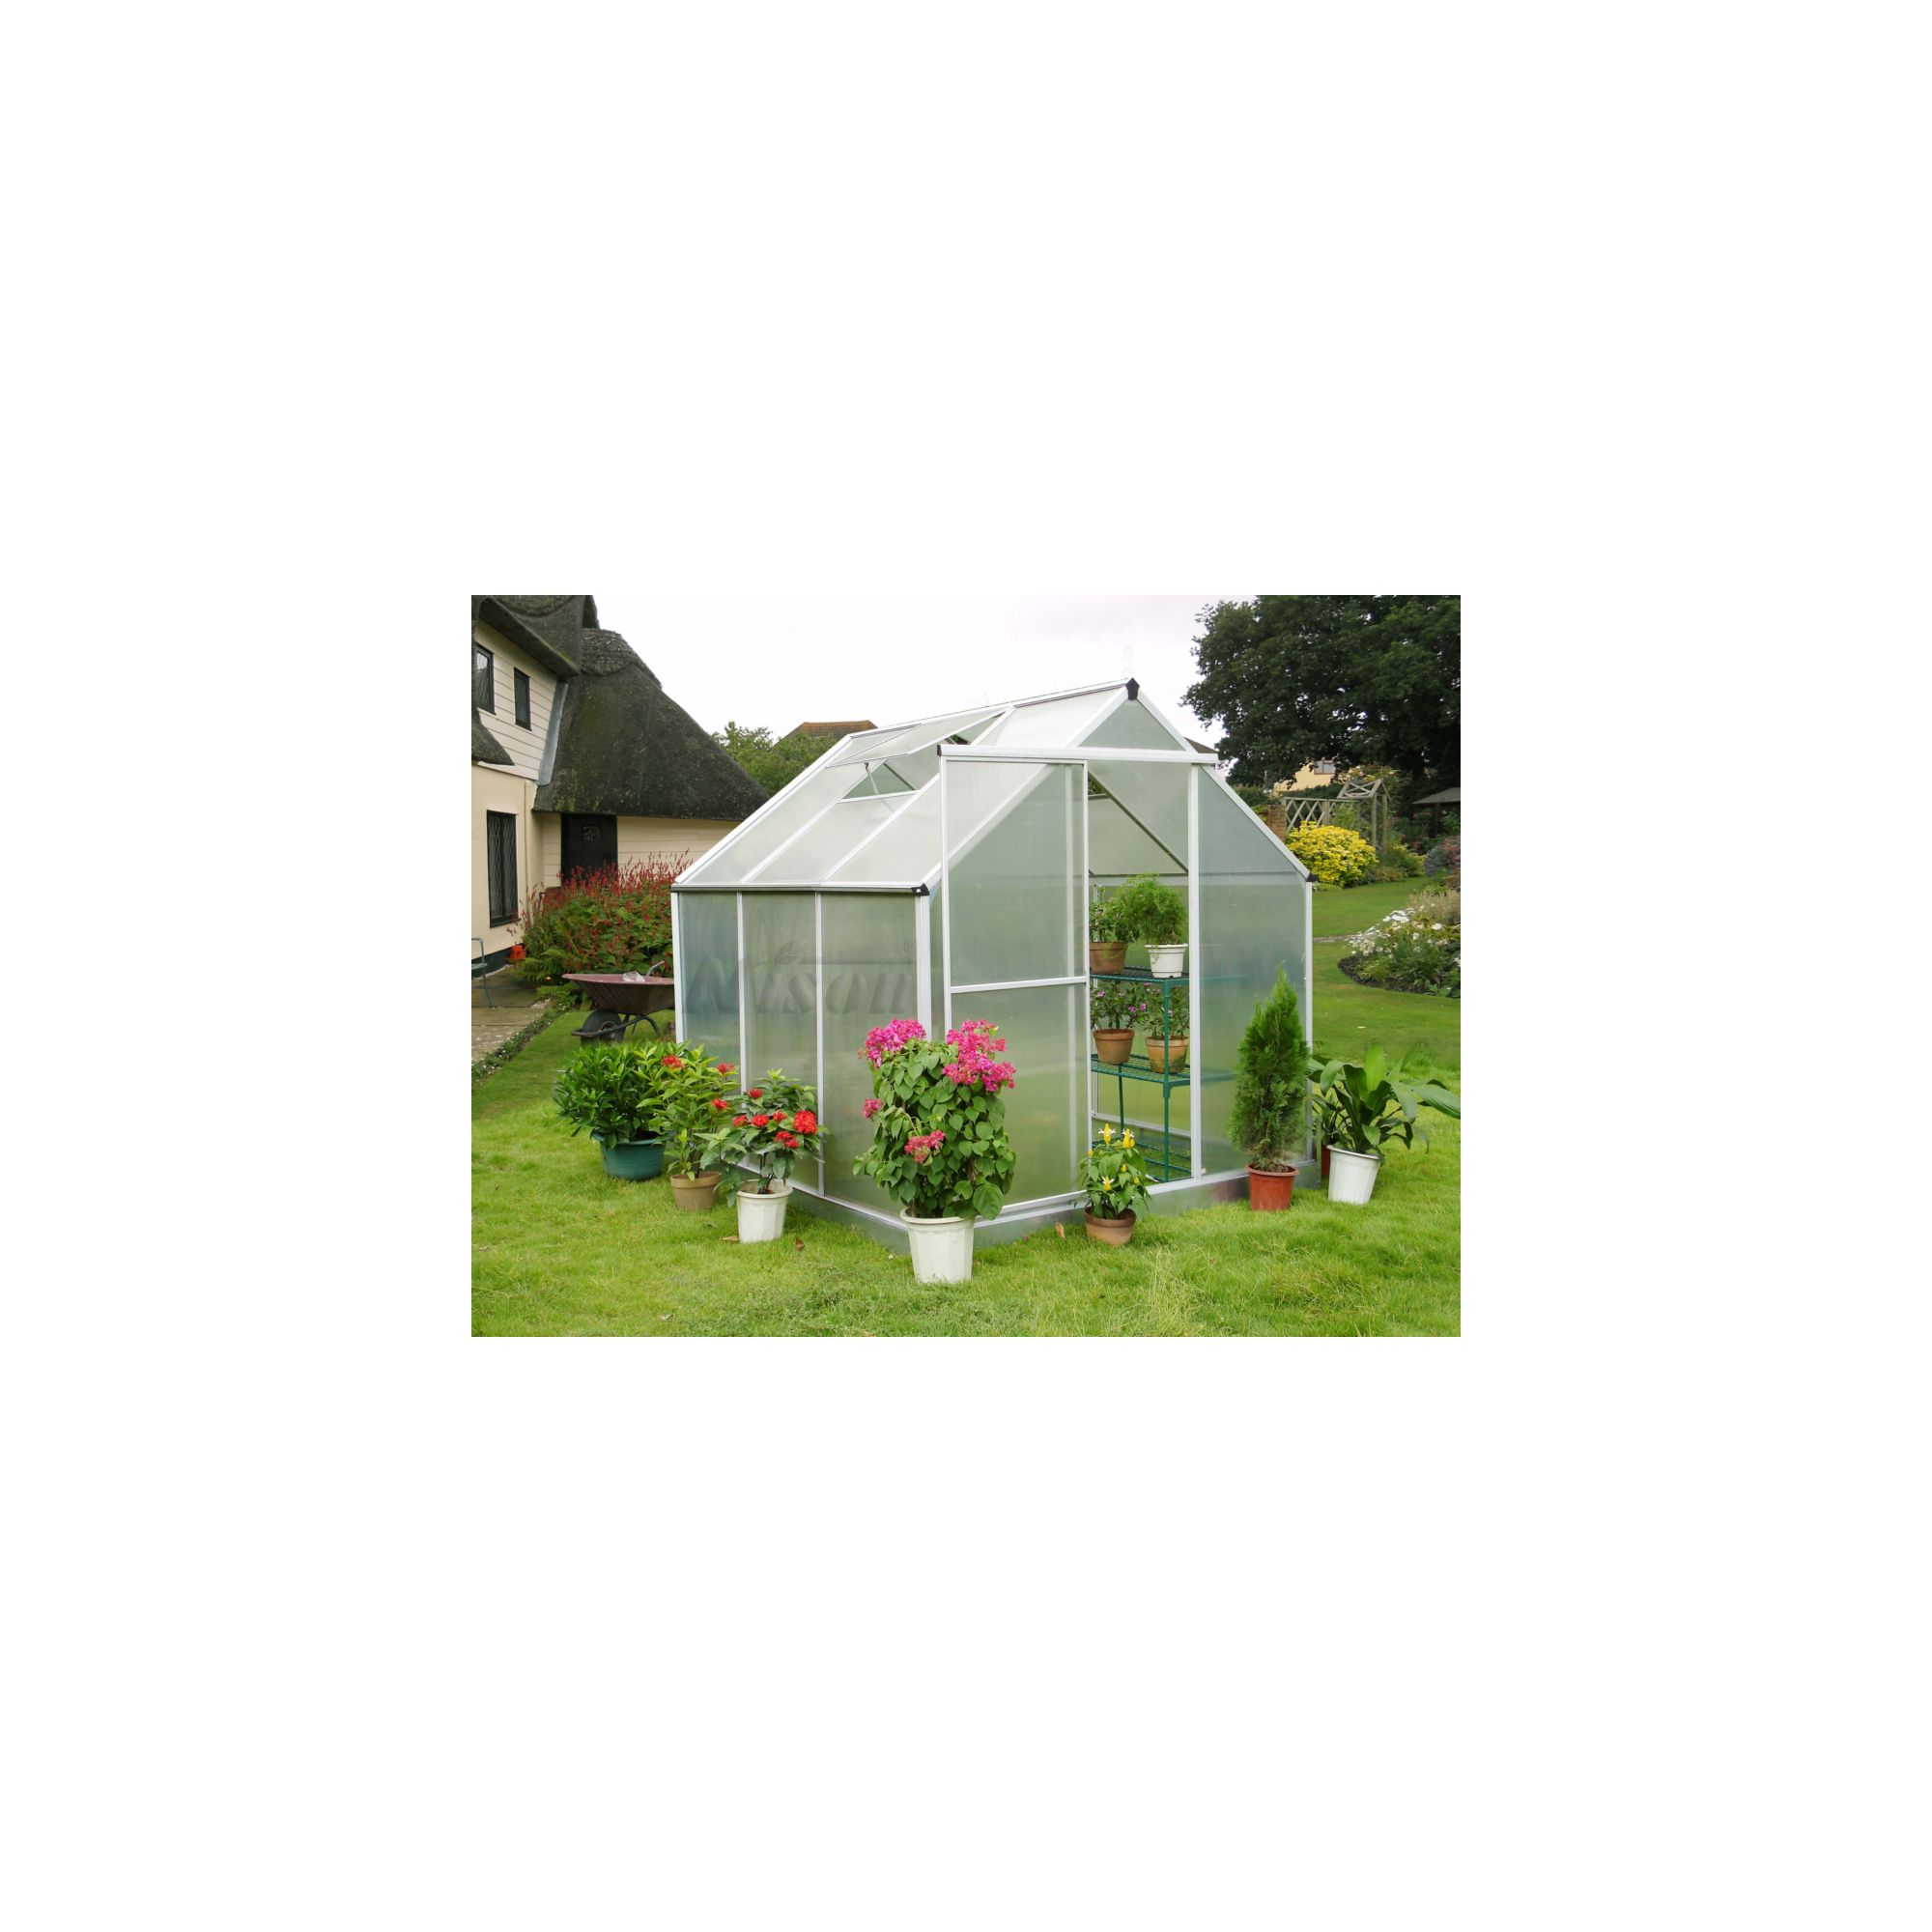 Nison Aquila 6x6 Aluminium Polycarbonate Greenhouse, Including Base & Free Shelving at Tesco Direct